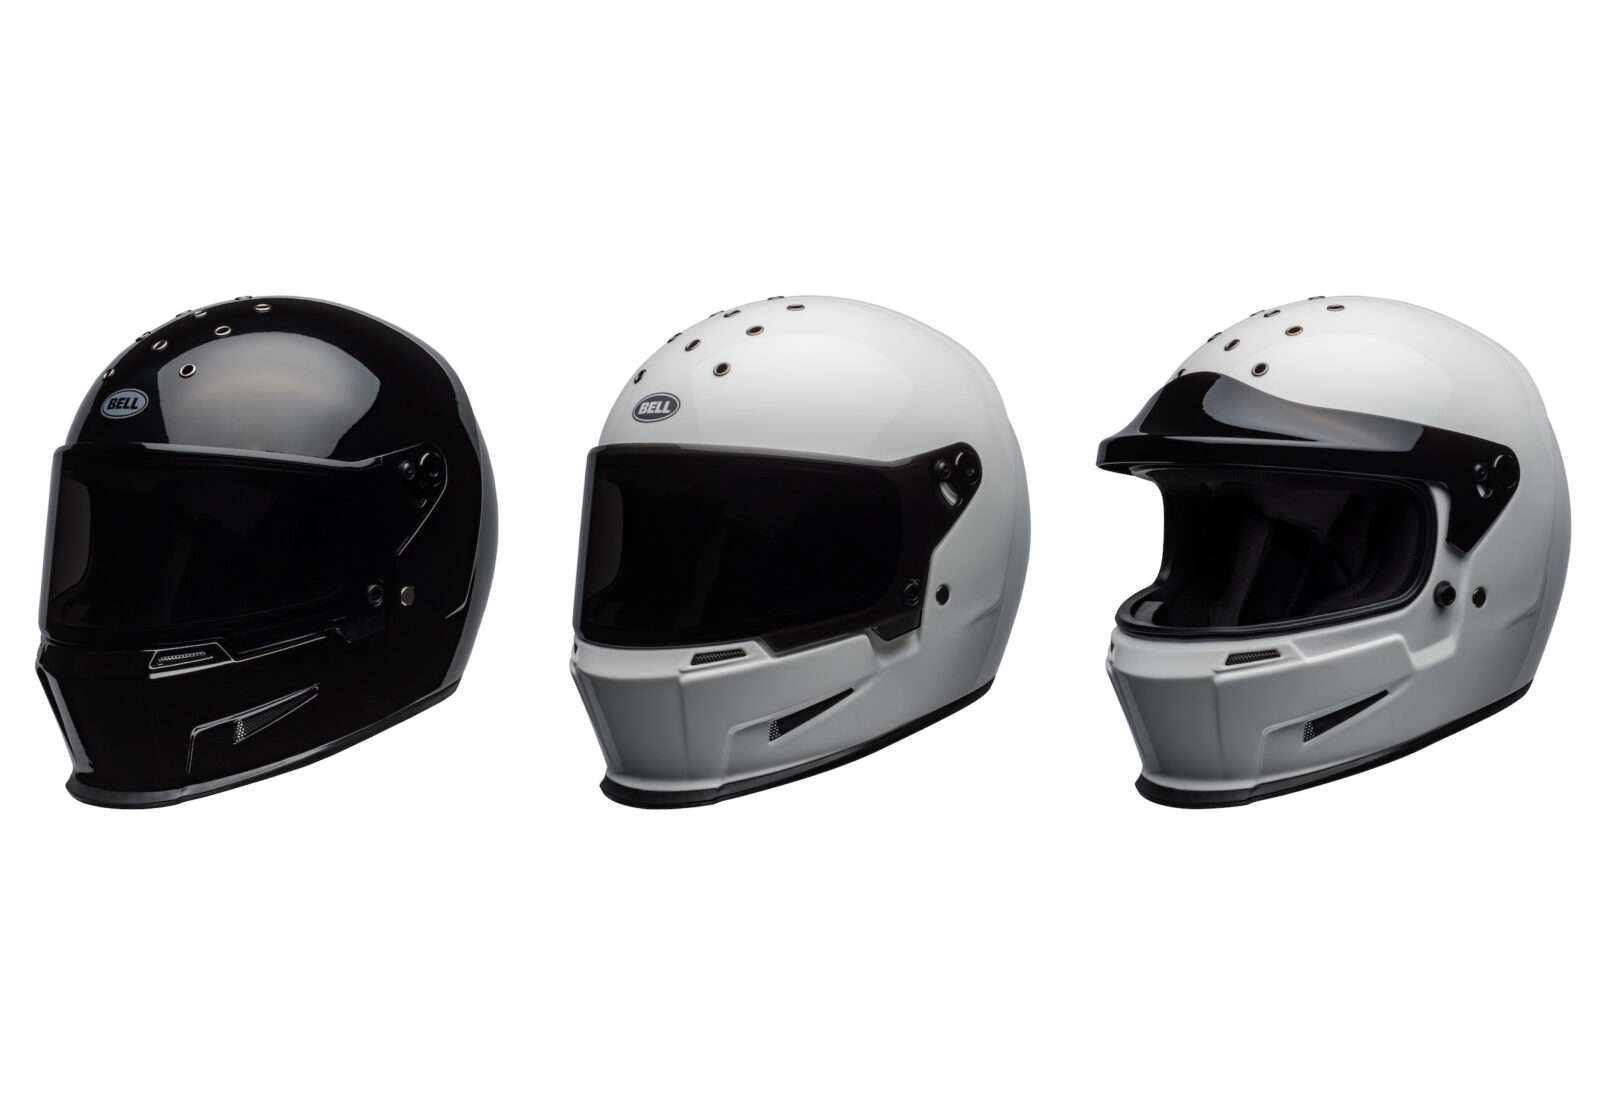 The New Bell Eliminator Helmet - Everything You Need To Know